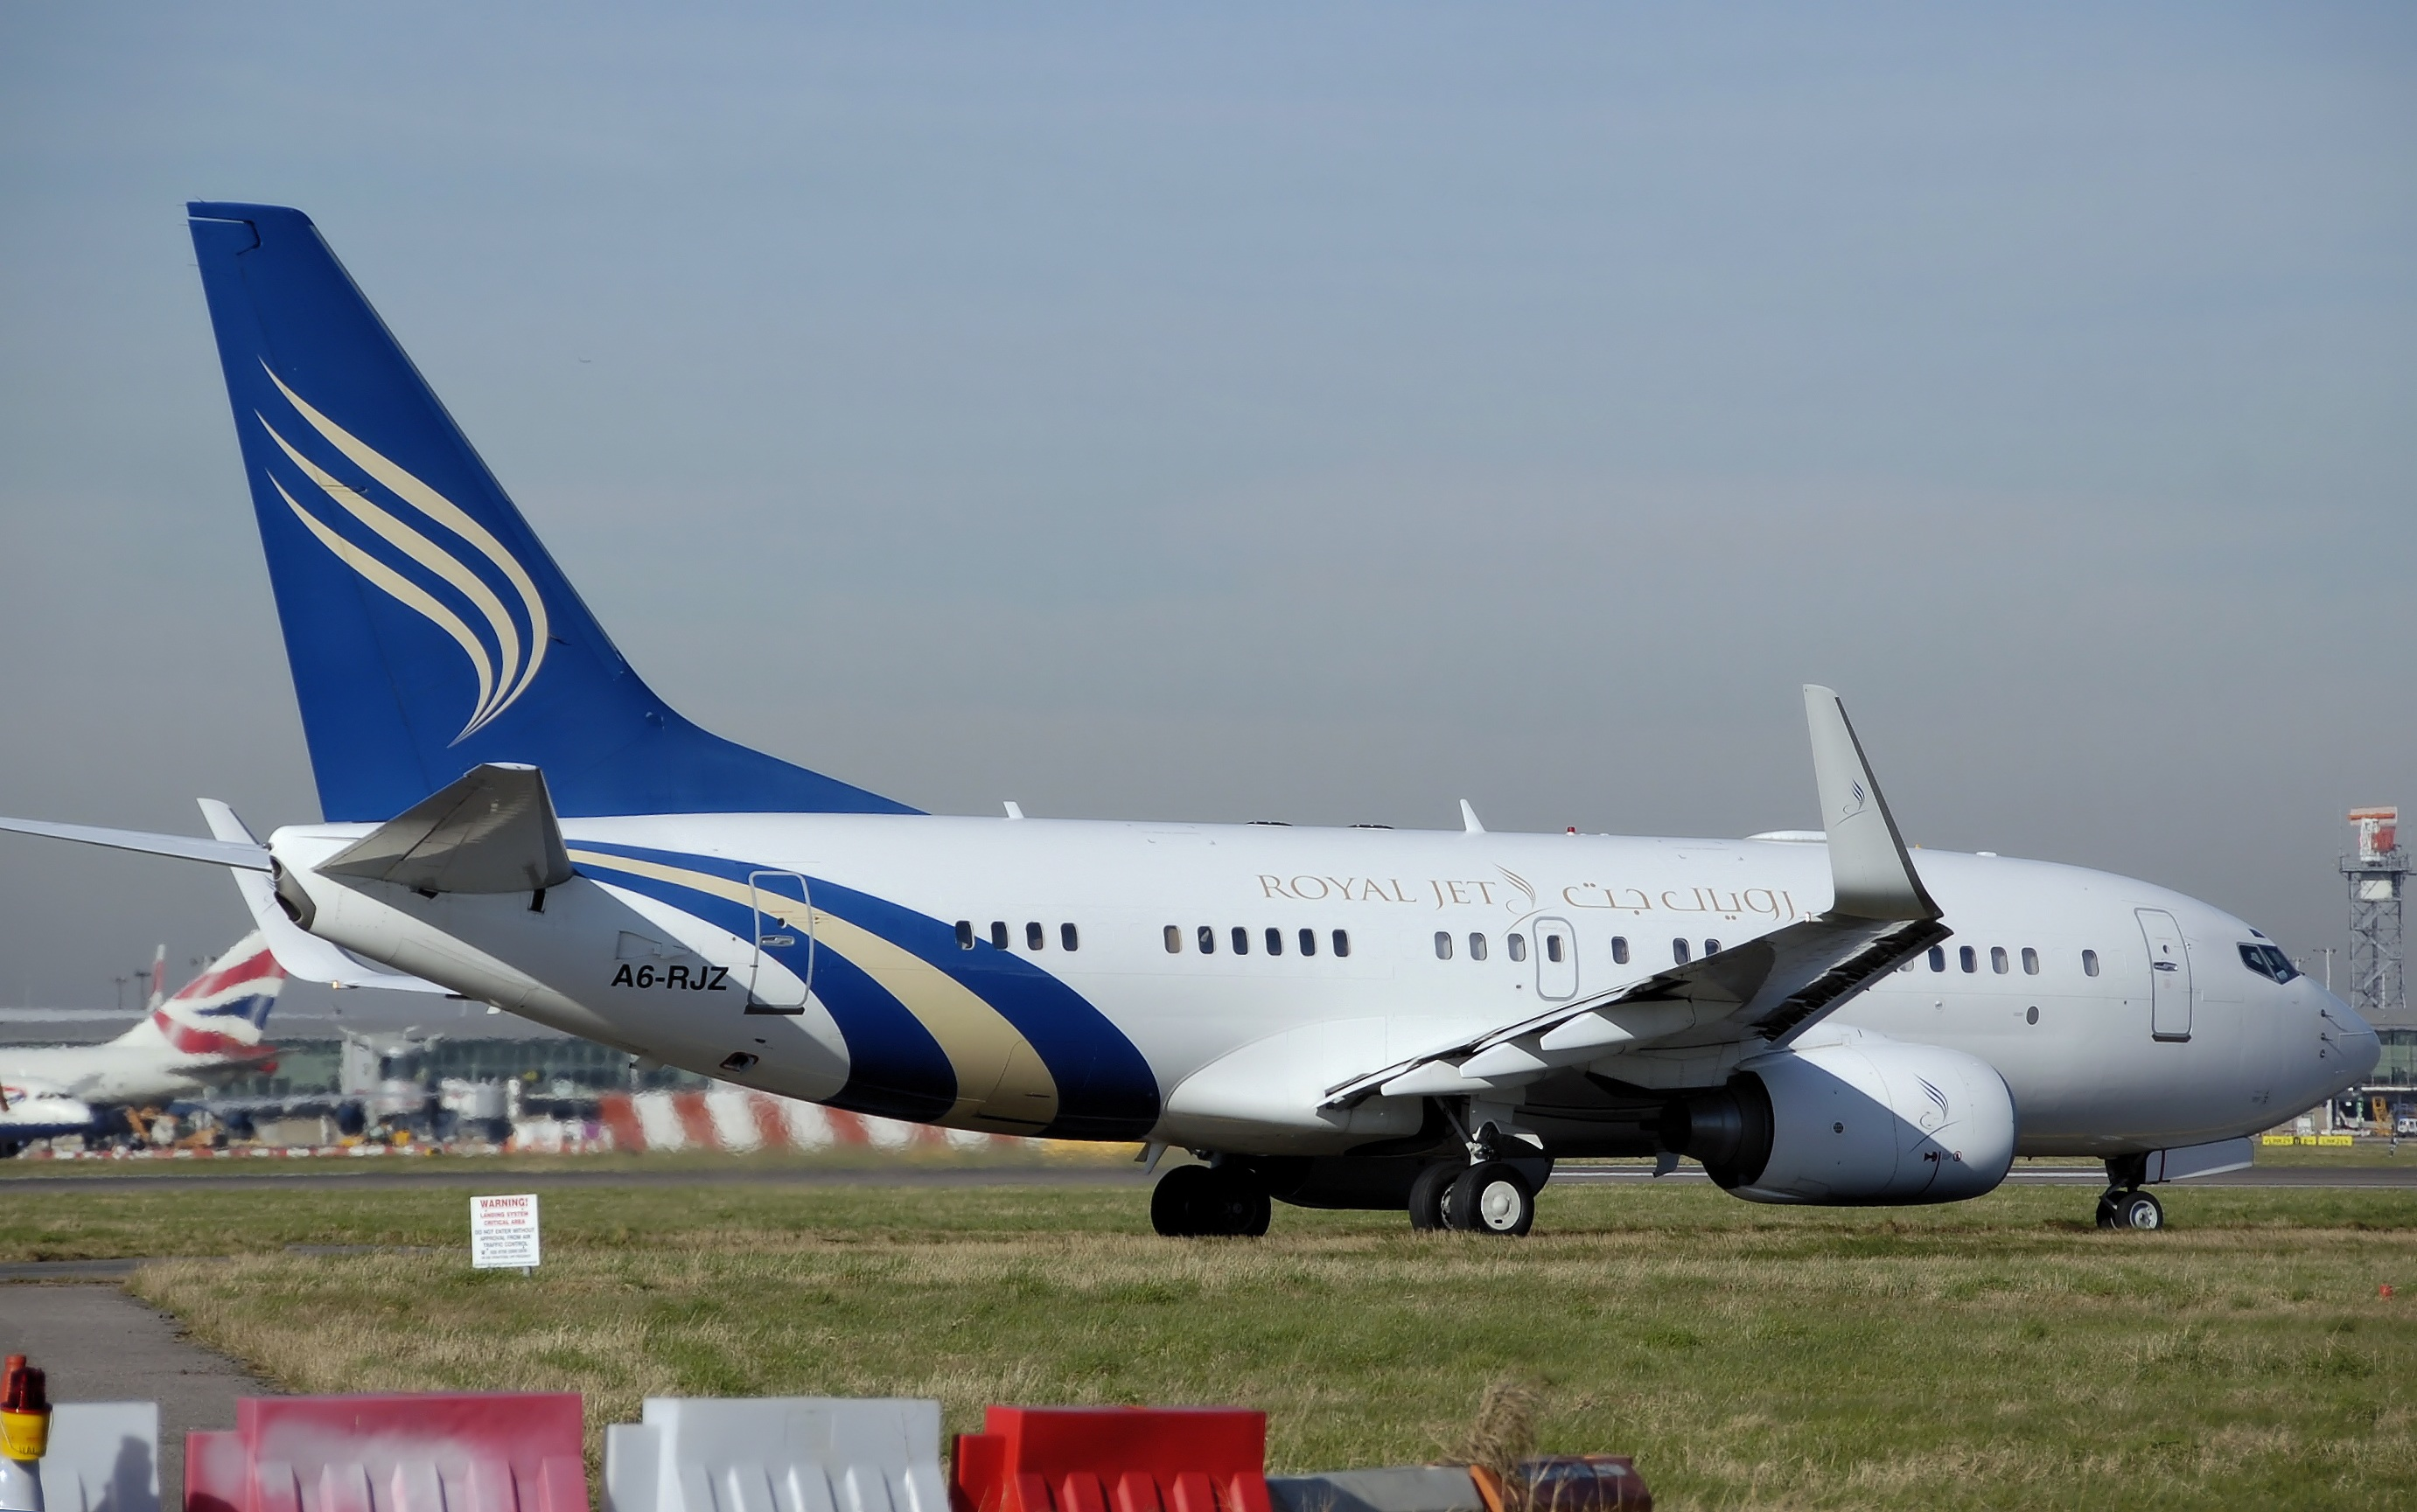 Royal Jet, Air, Airplane, Flying, Journey, HQ Photo